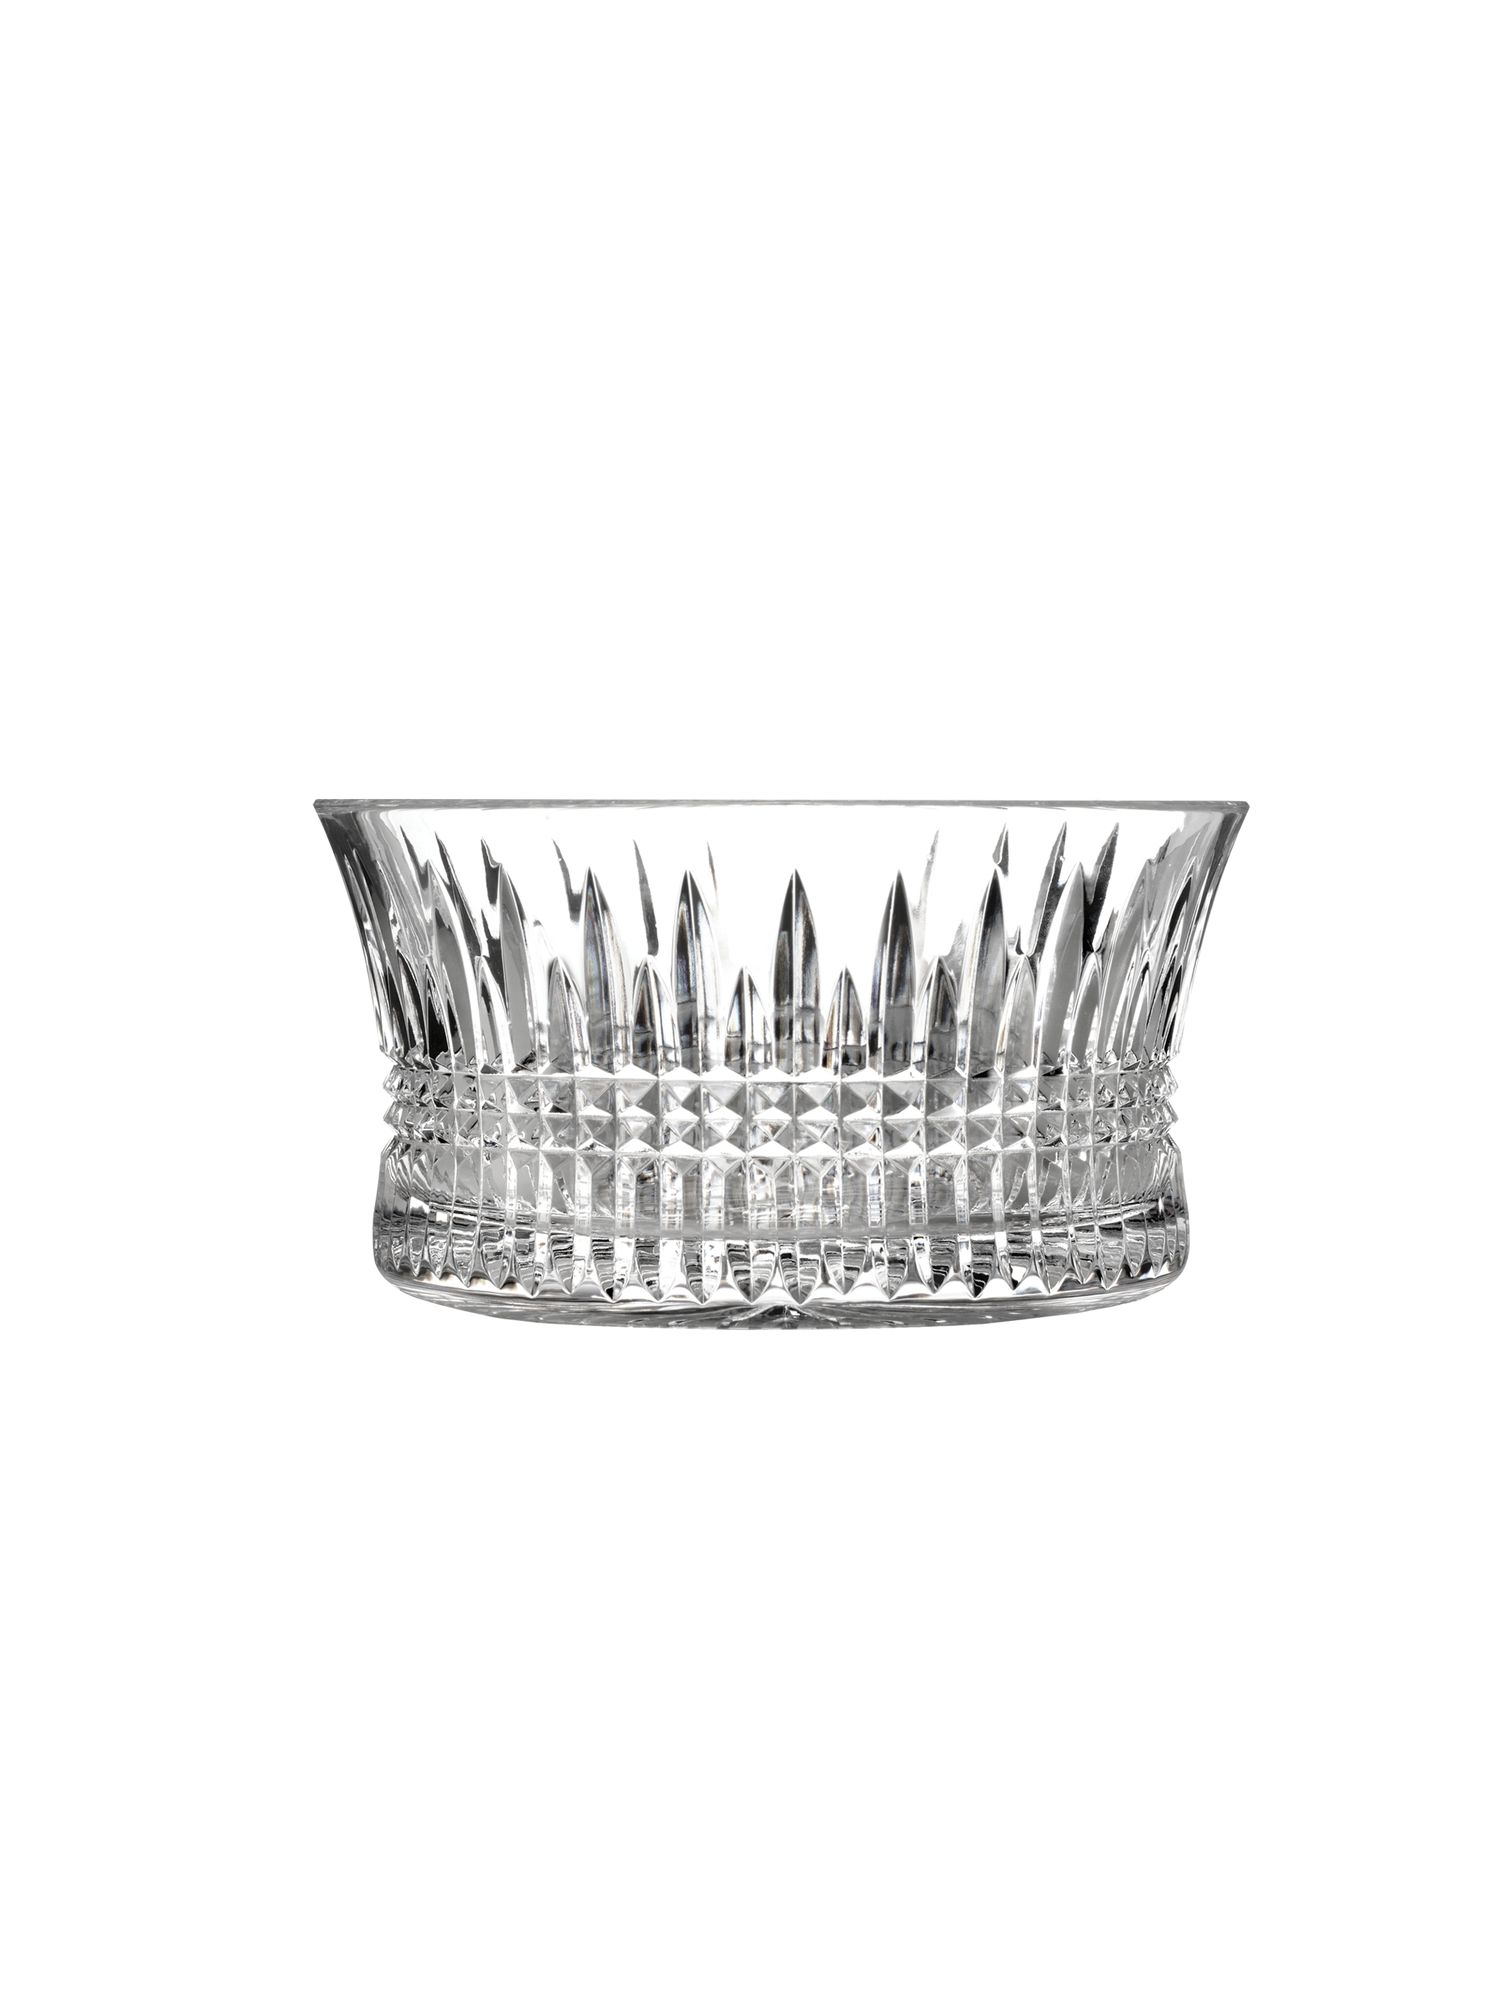 Waterford Crystal Candle Holders Candles Shop UK : I1827604095020130730 from candlesshop.co.uk size 1500 x 2000 jpeg 129kB